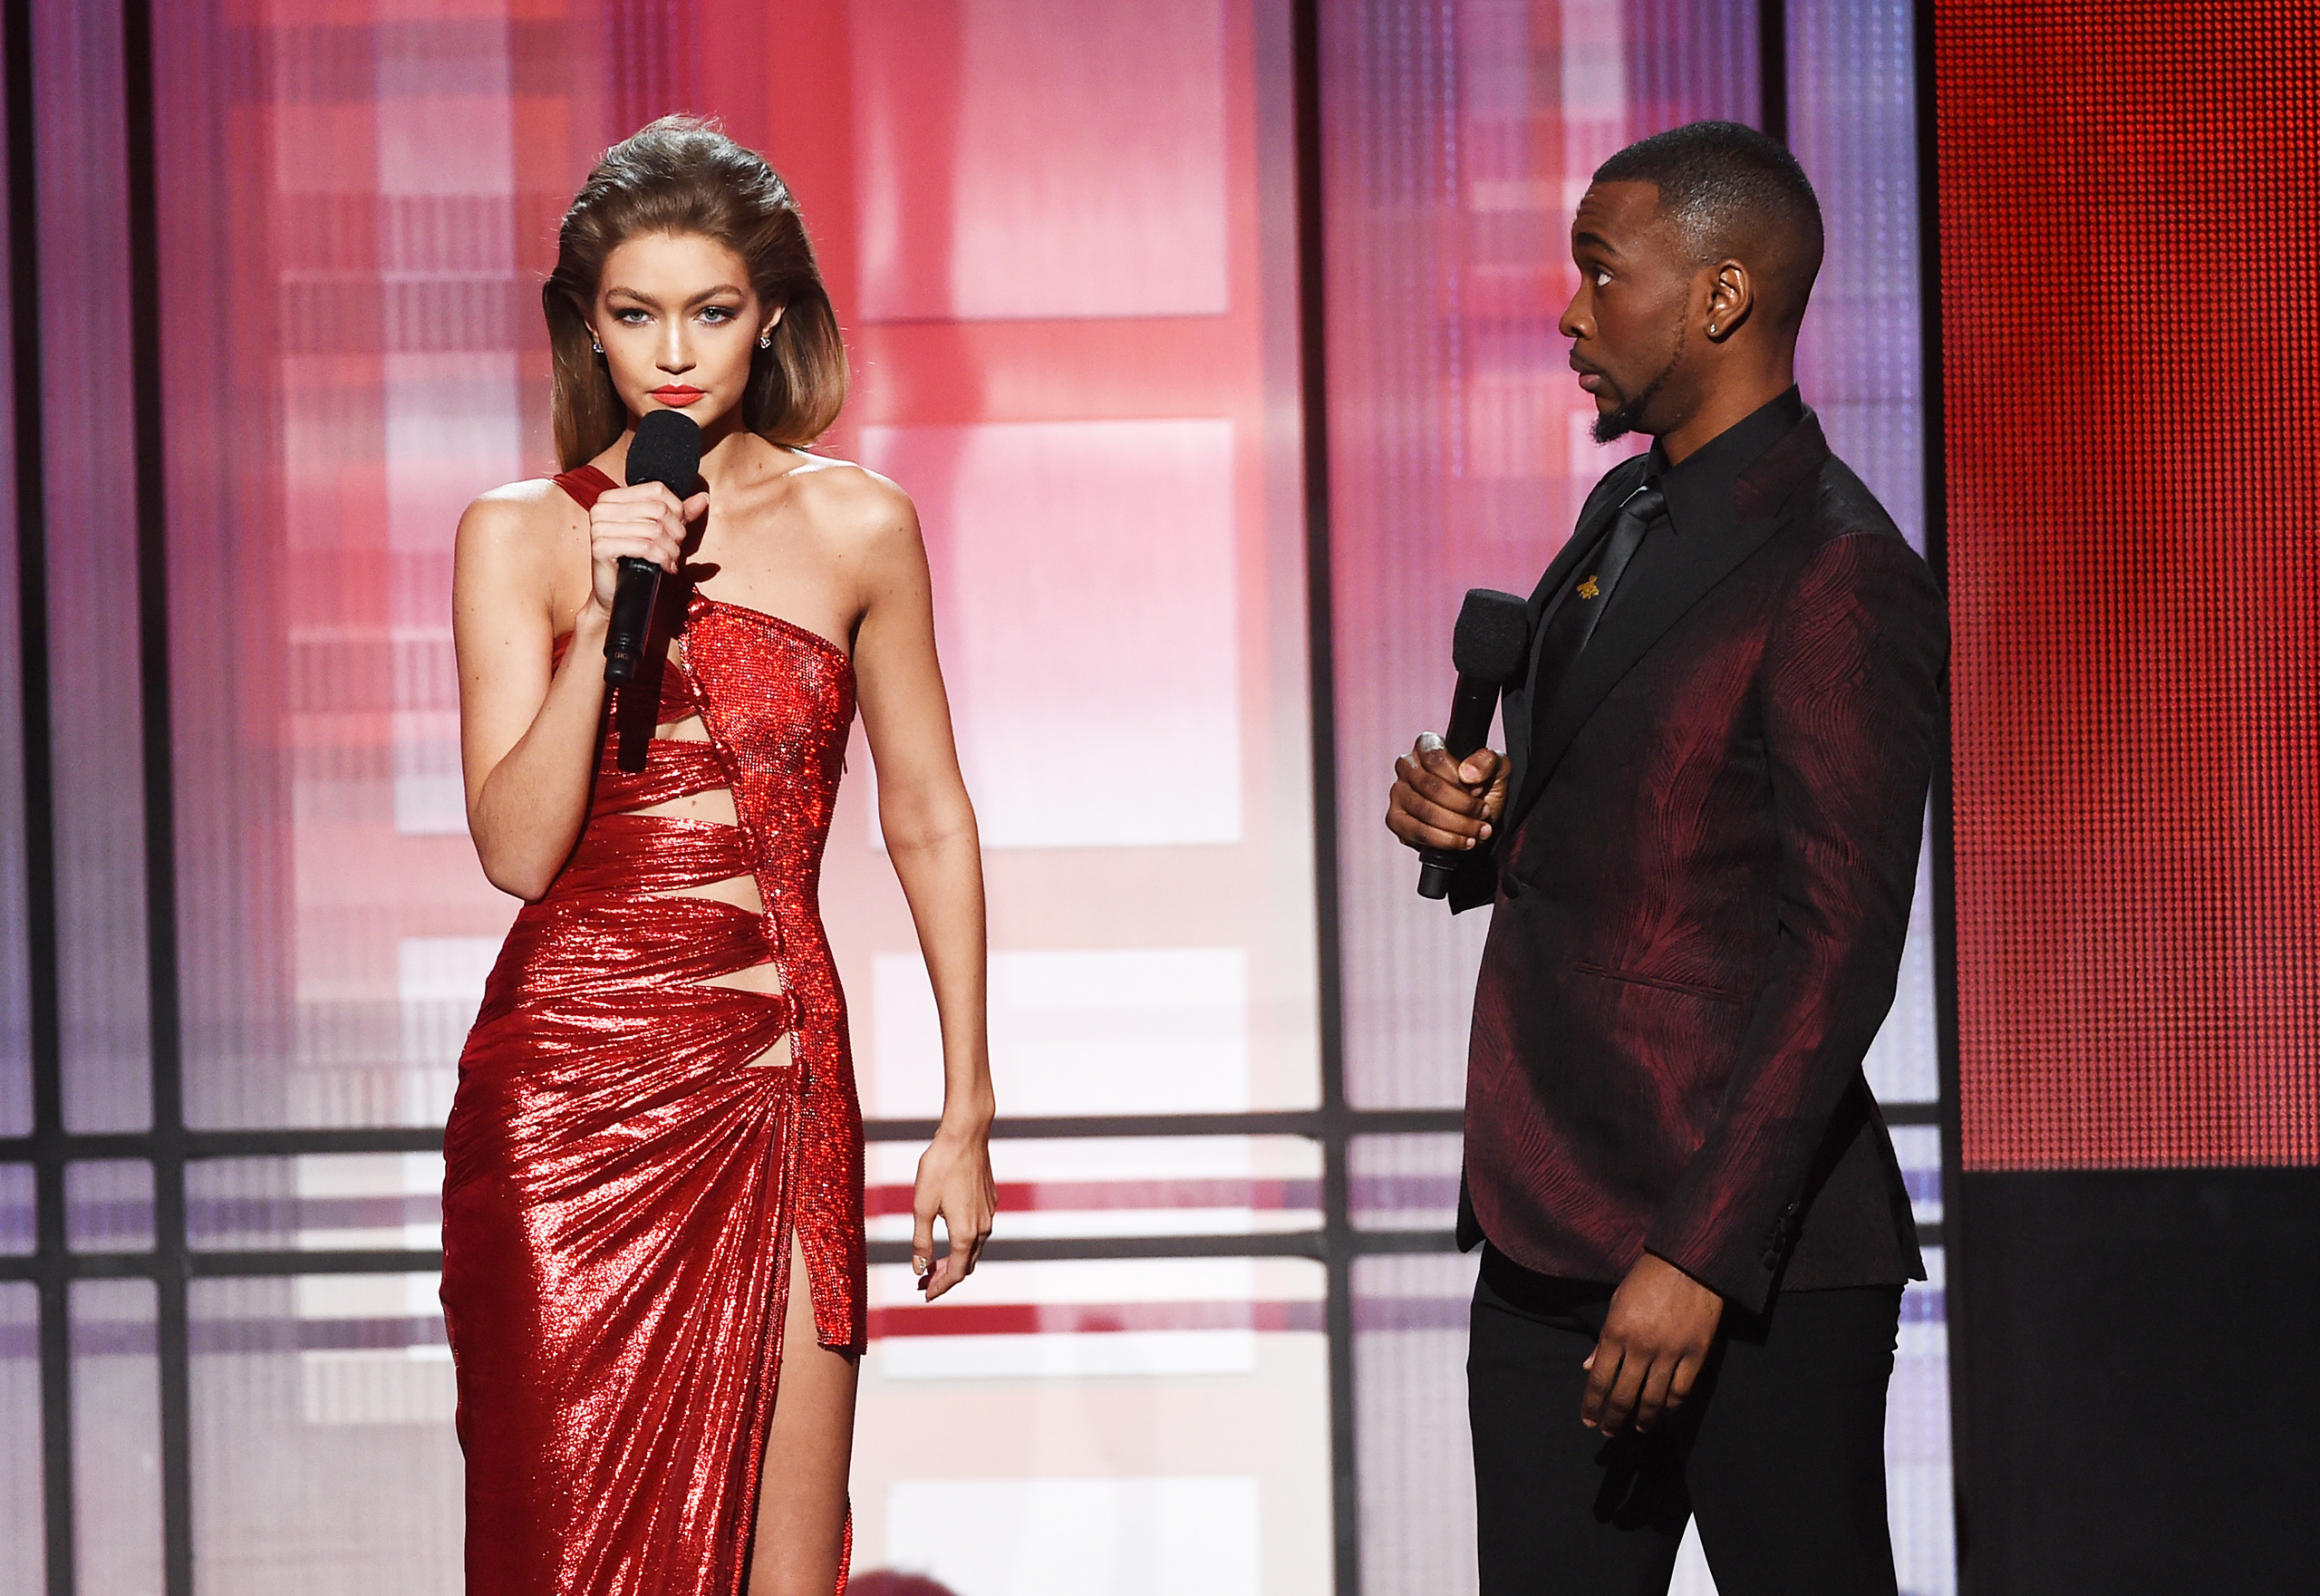 Co-hosts Gigi Hadid (L) and Jay Pharoah speak onstage during the 2016 American Music Awards at Microsoft Theater in Los Angeles, California, on Nov. 20, 2016.